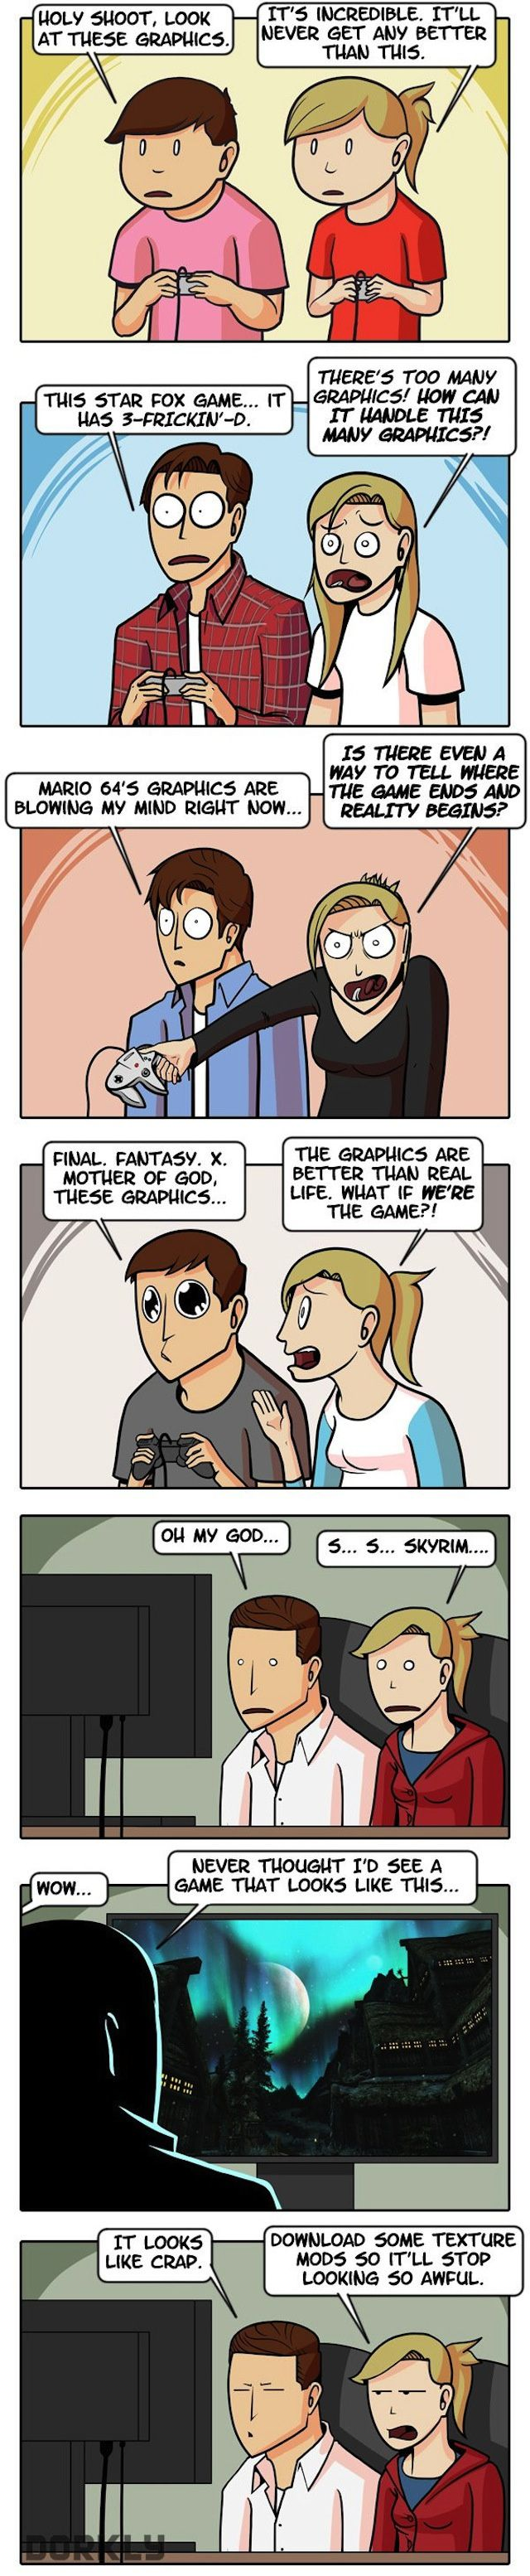 The Totally True History of Video Game Graphics. sorry, completely unrelated but I just cant help but rant about this. SKYRIM HAS SOME OF THE BEST GRAPHICS THAT YOU DICKS WILL EVER LIKELY SEE; APPRECIATE THE VANILLA GAME MOFOS!!